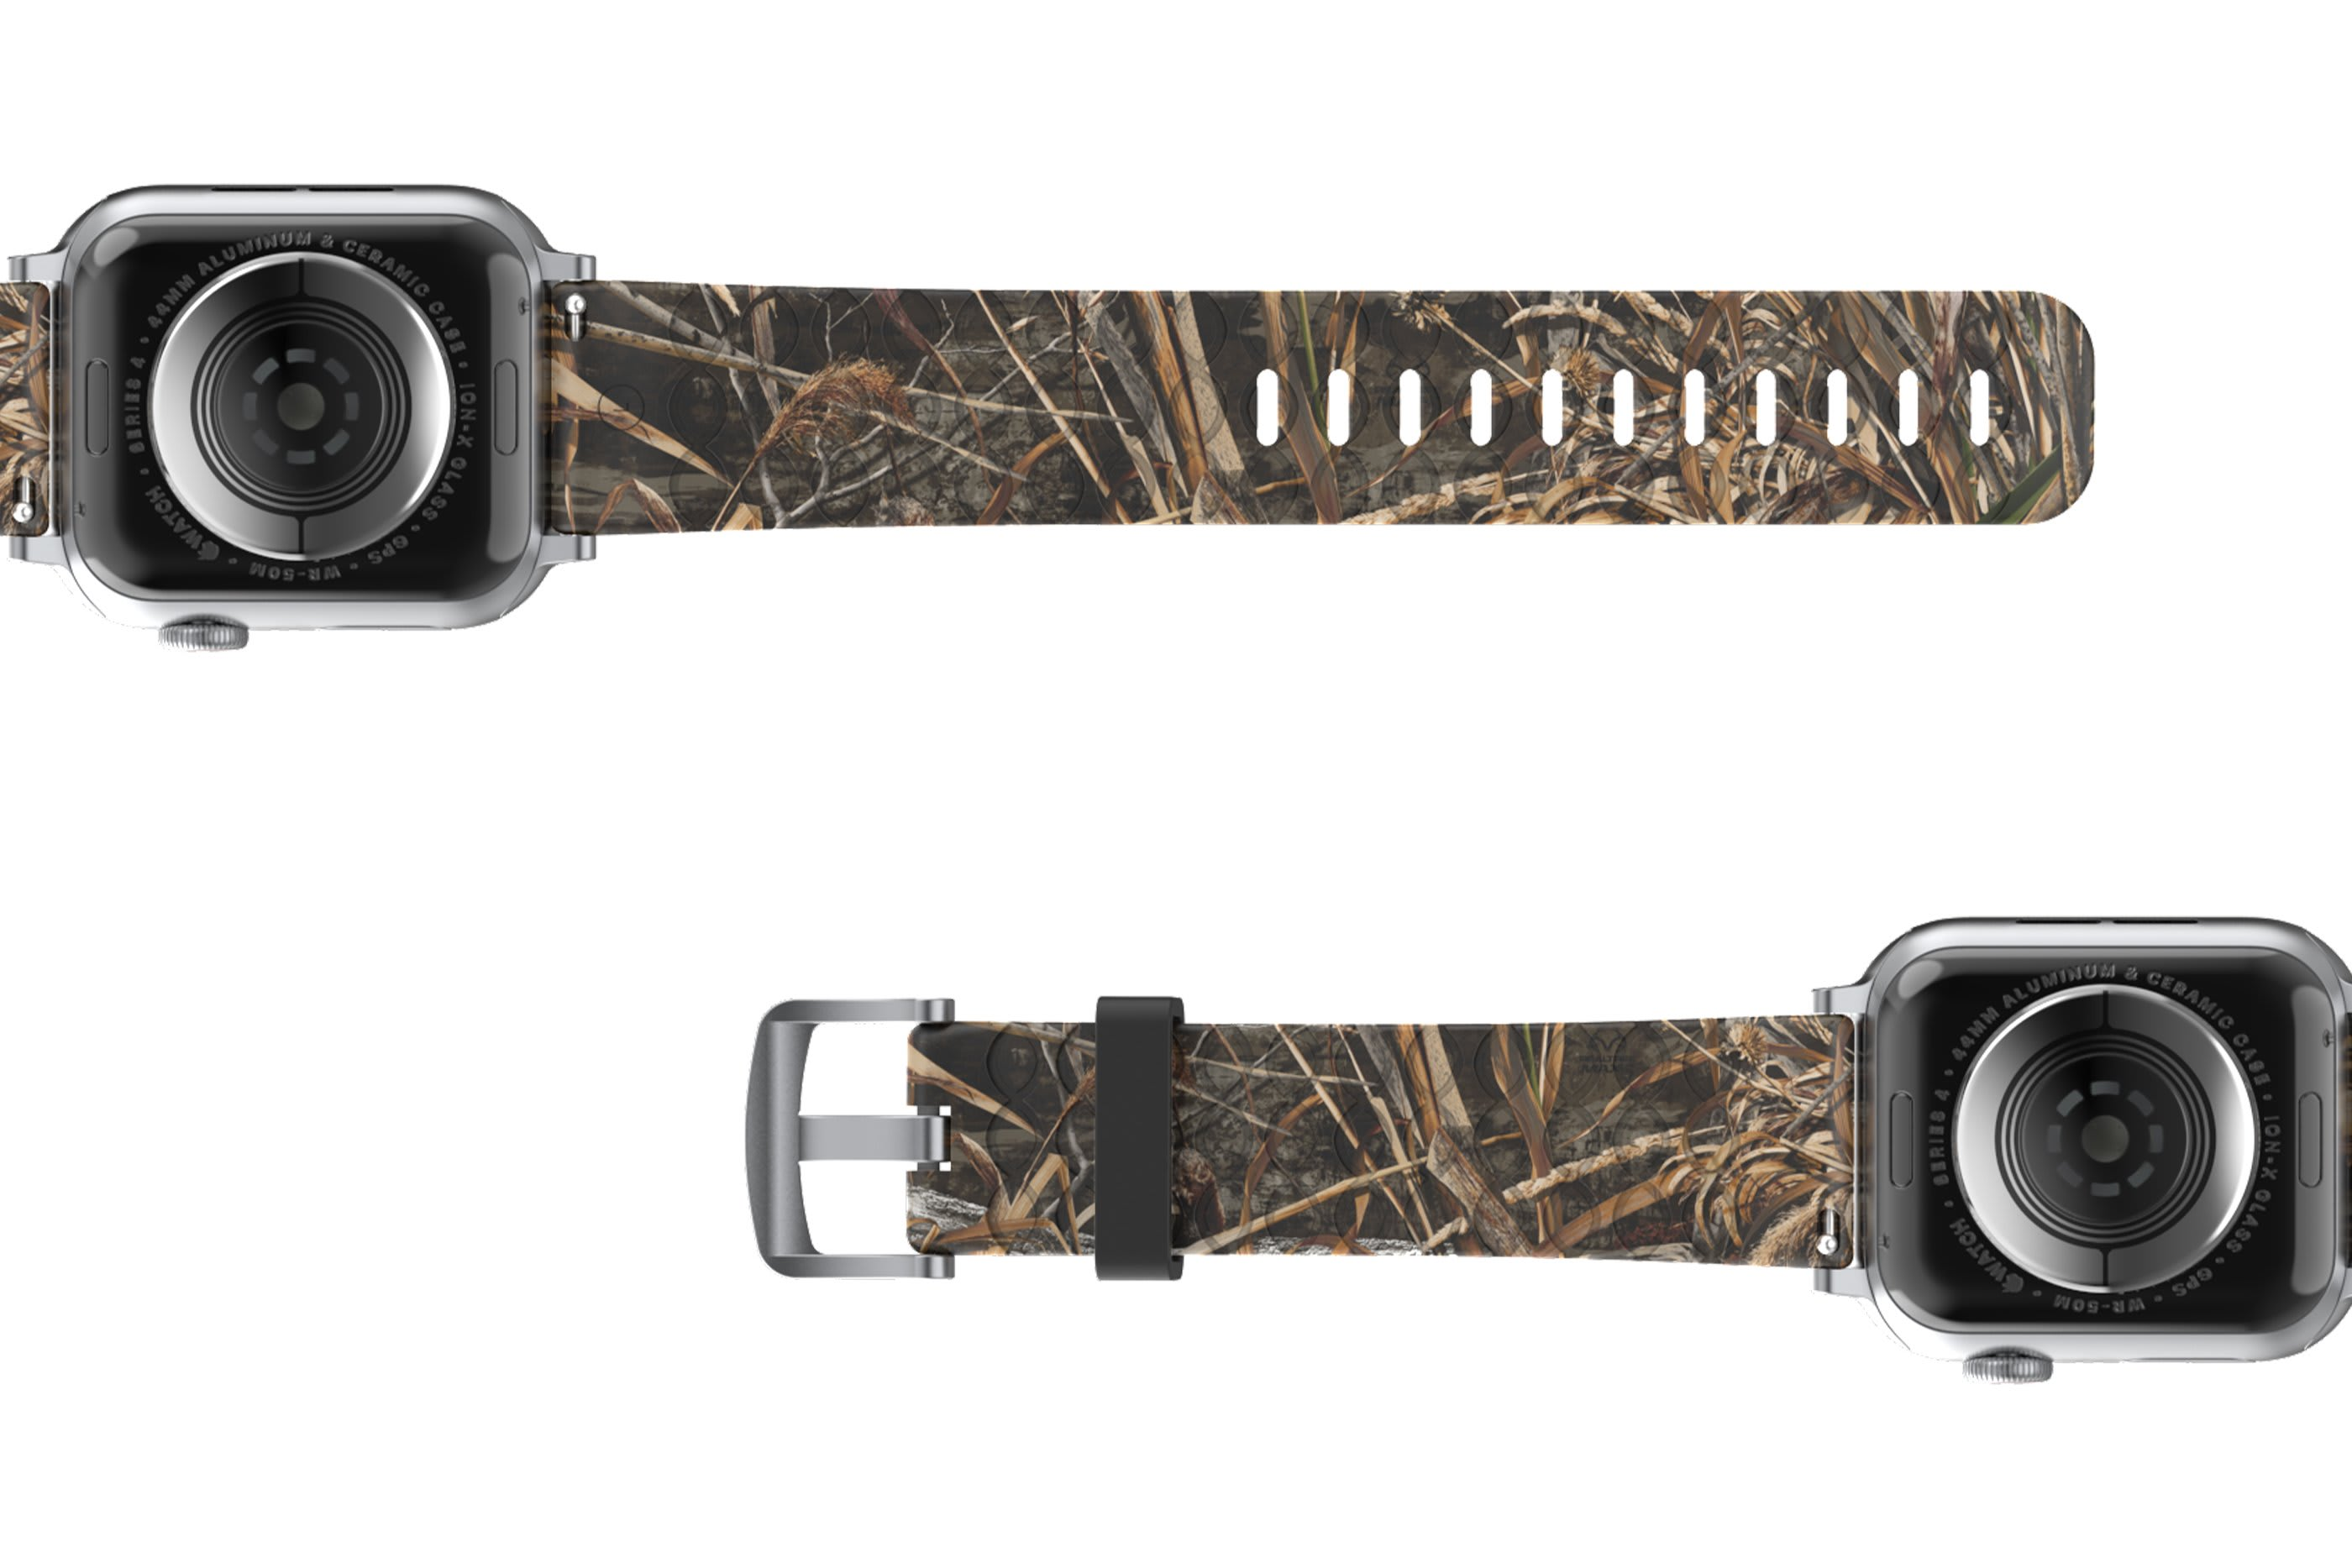 Realtree Max 5 Apple Watch Band with gray hardware viewed bottom up